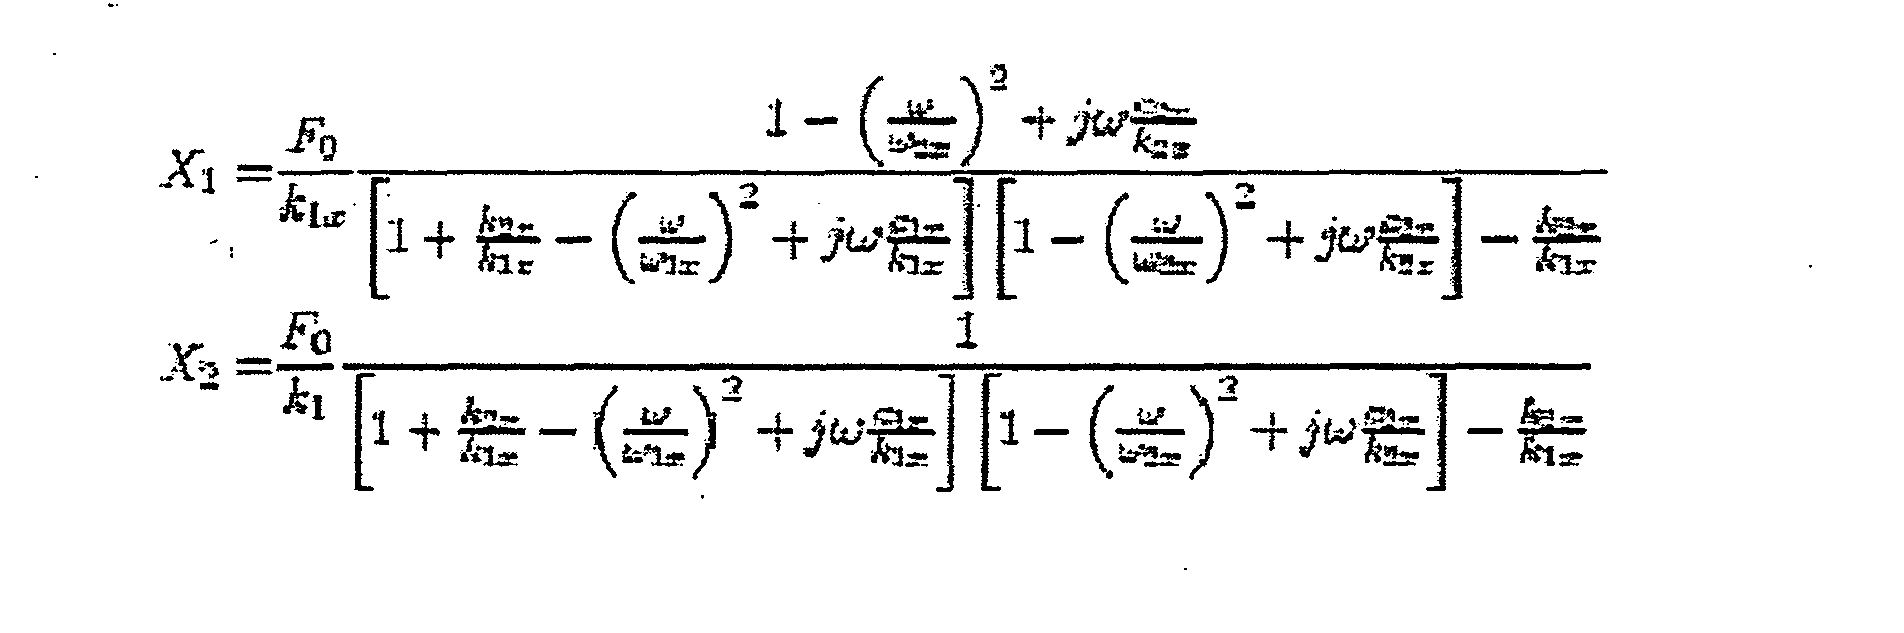 how to cancel out mass in ccentripedal force equation